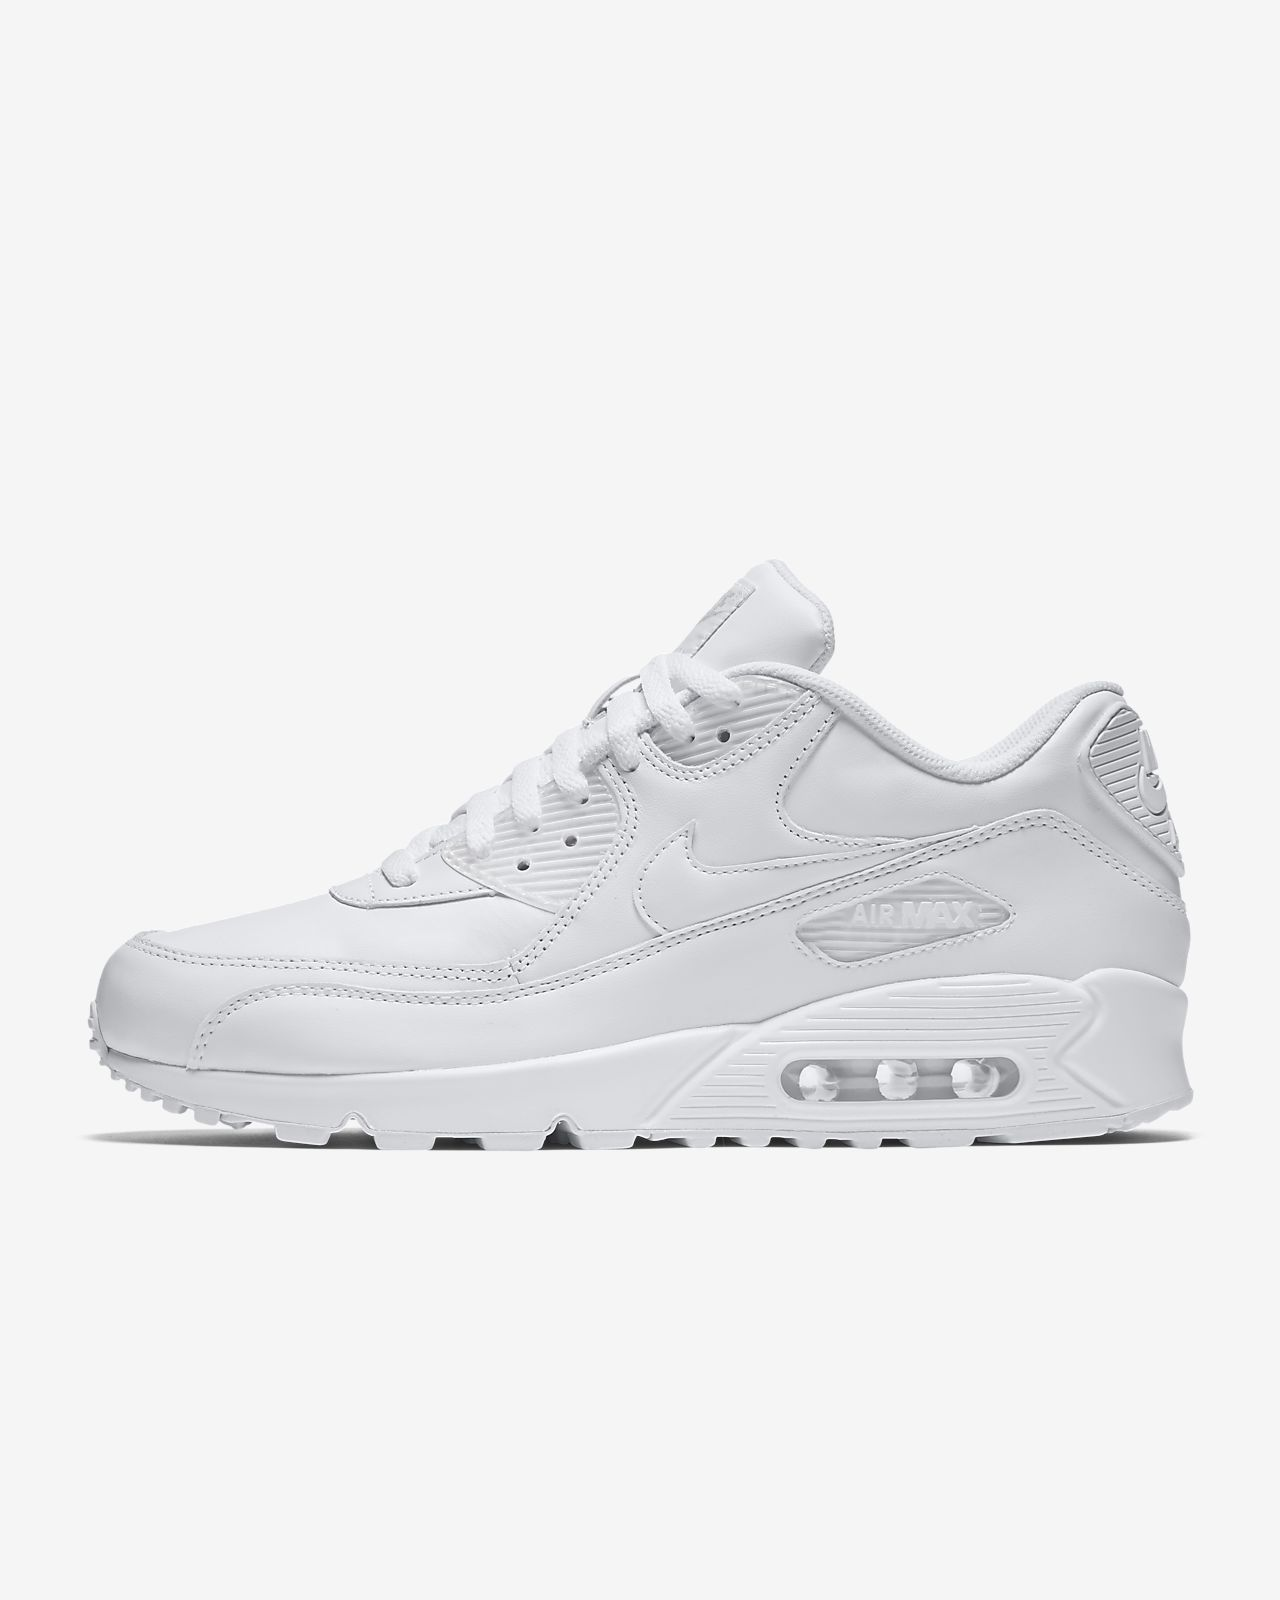 2nike air max 90 leather uomo